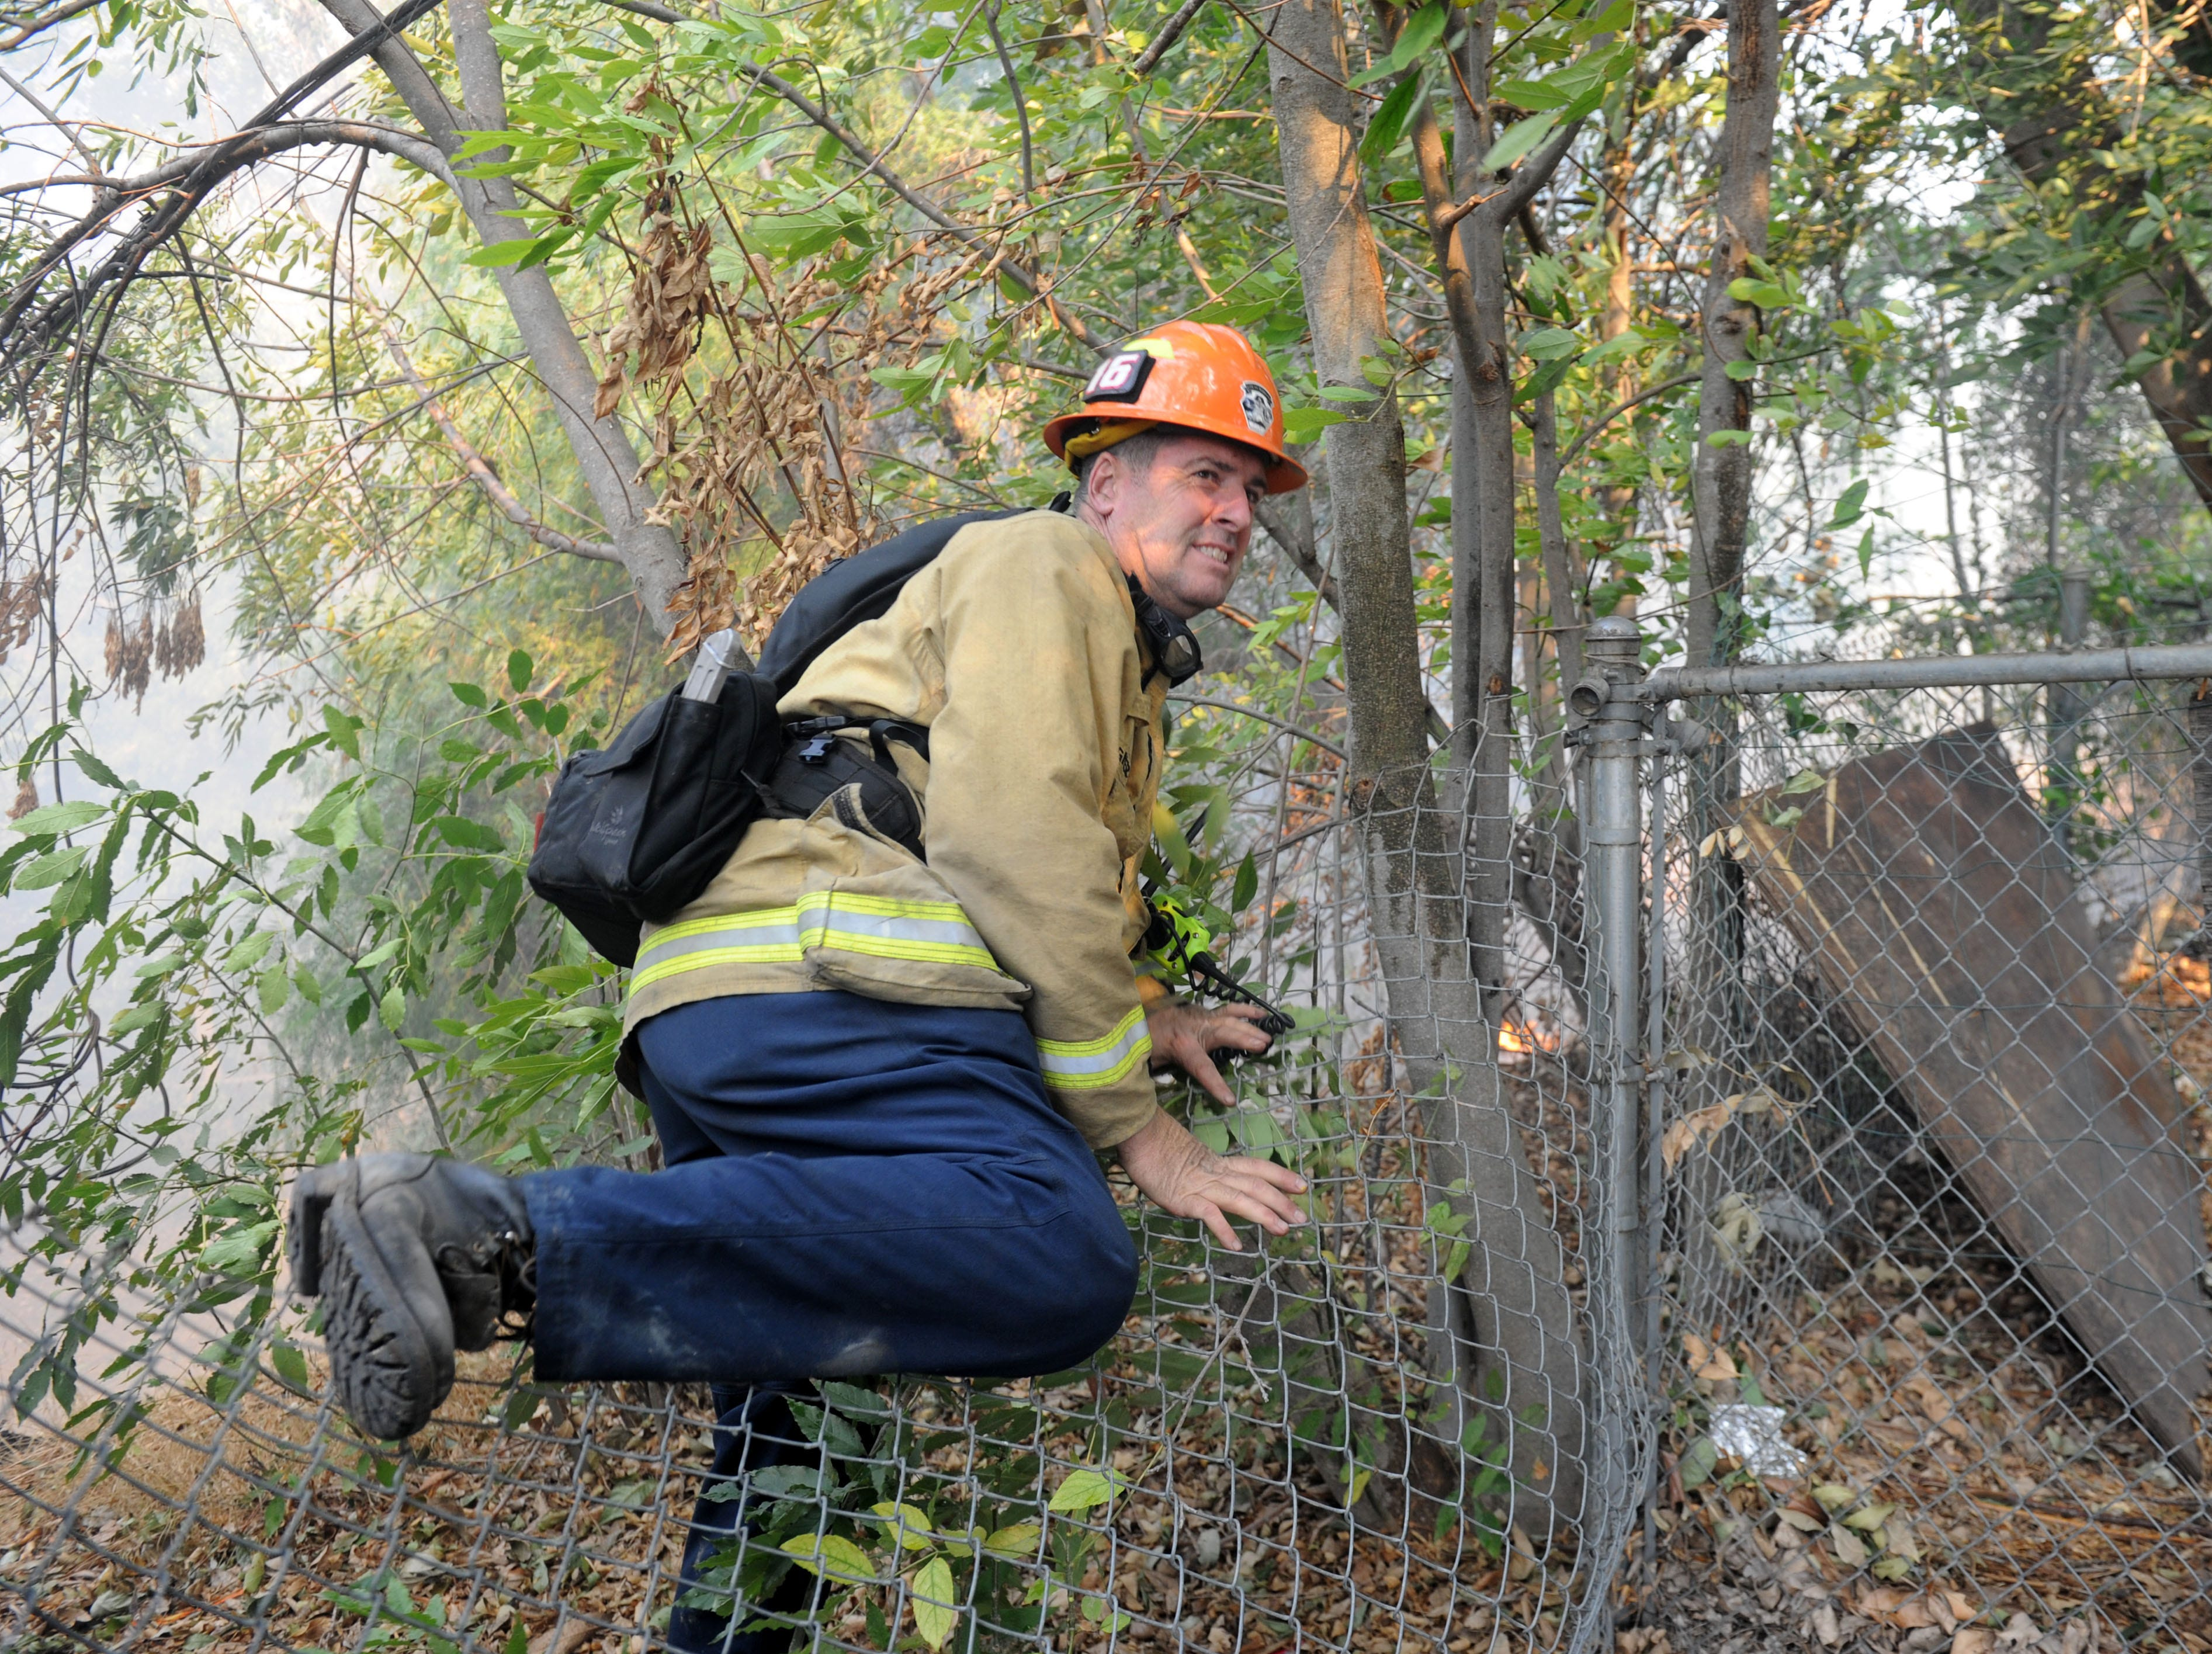 A firefighter jumps a fence that had flames at Erbes Road and El Monte Drive in Thousand Oaks.